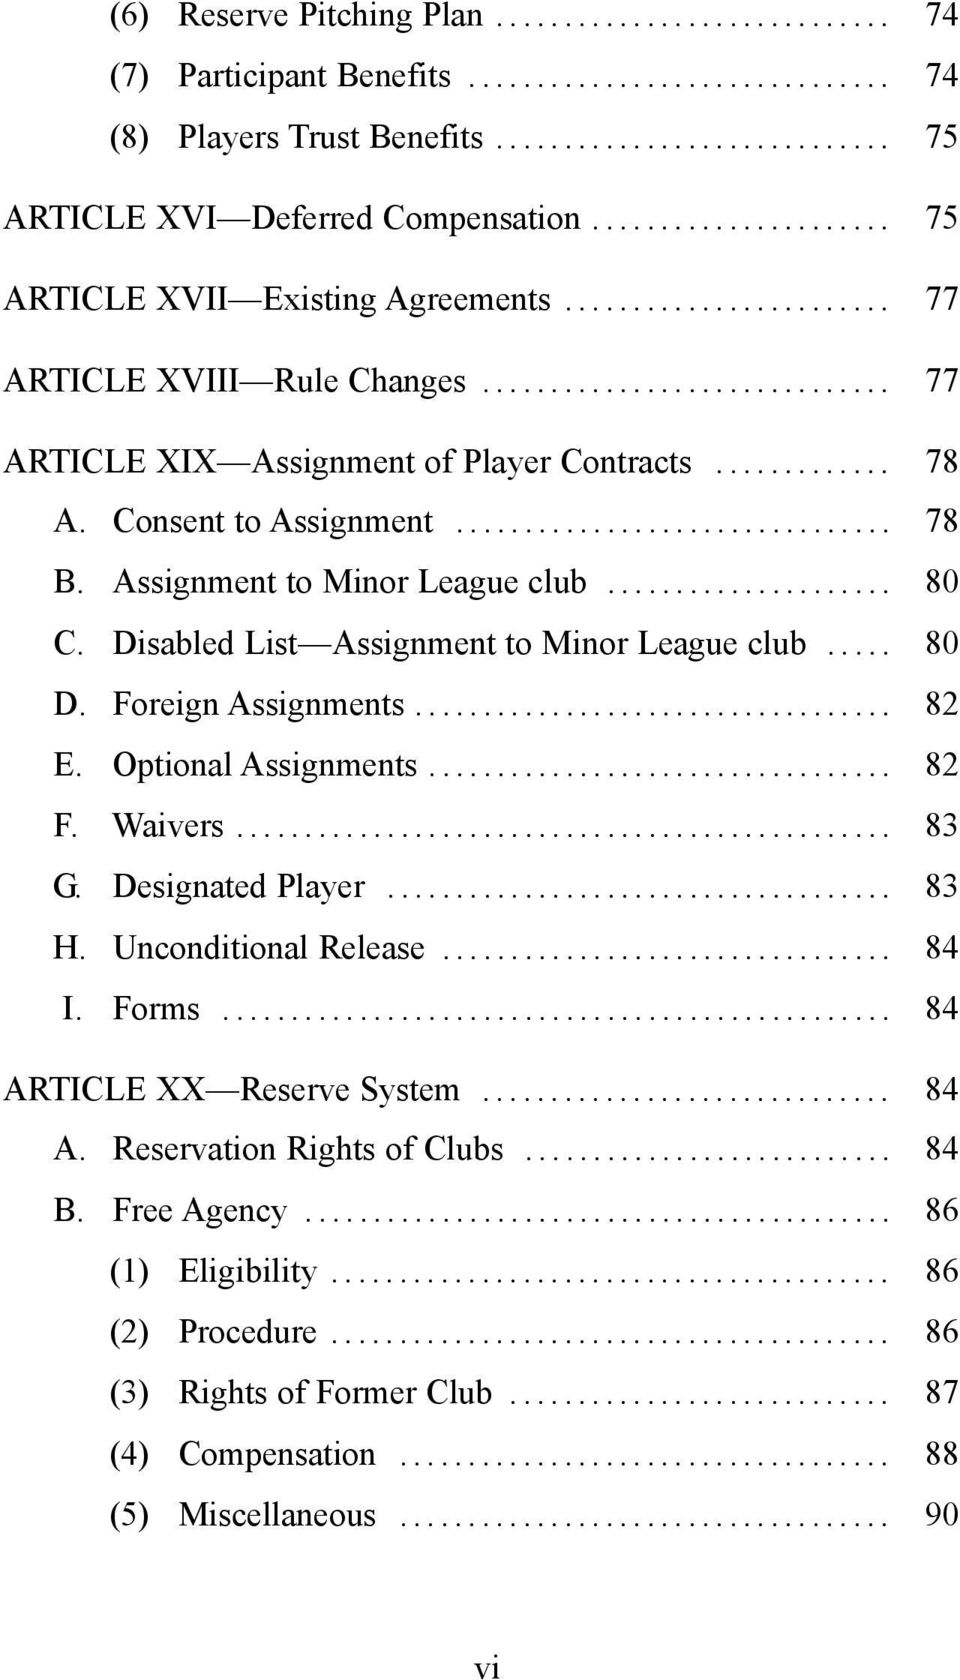 Disabled List Assignment to Minor League club... 80 D. Foreign Assignments... 82 E. Optional Assignments... 82 F. Waivers... 83 G. Designated Player... 83 H. Unconditional Release... 84 I.